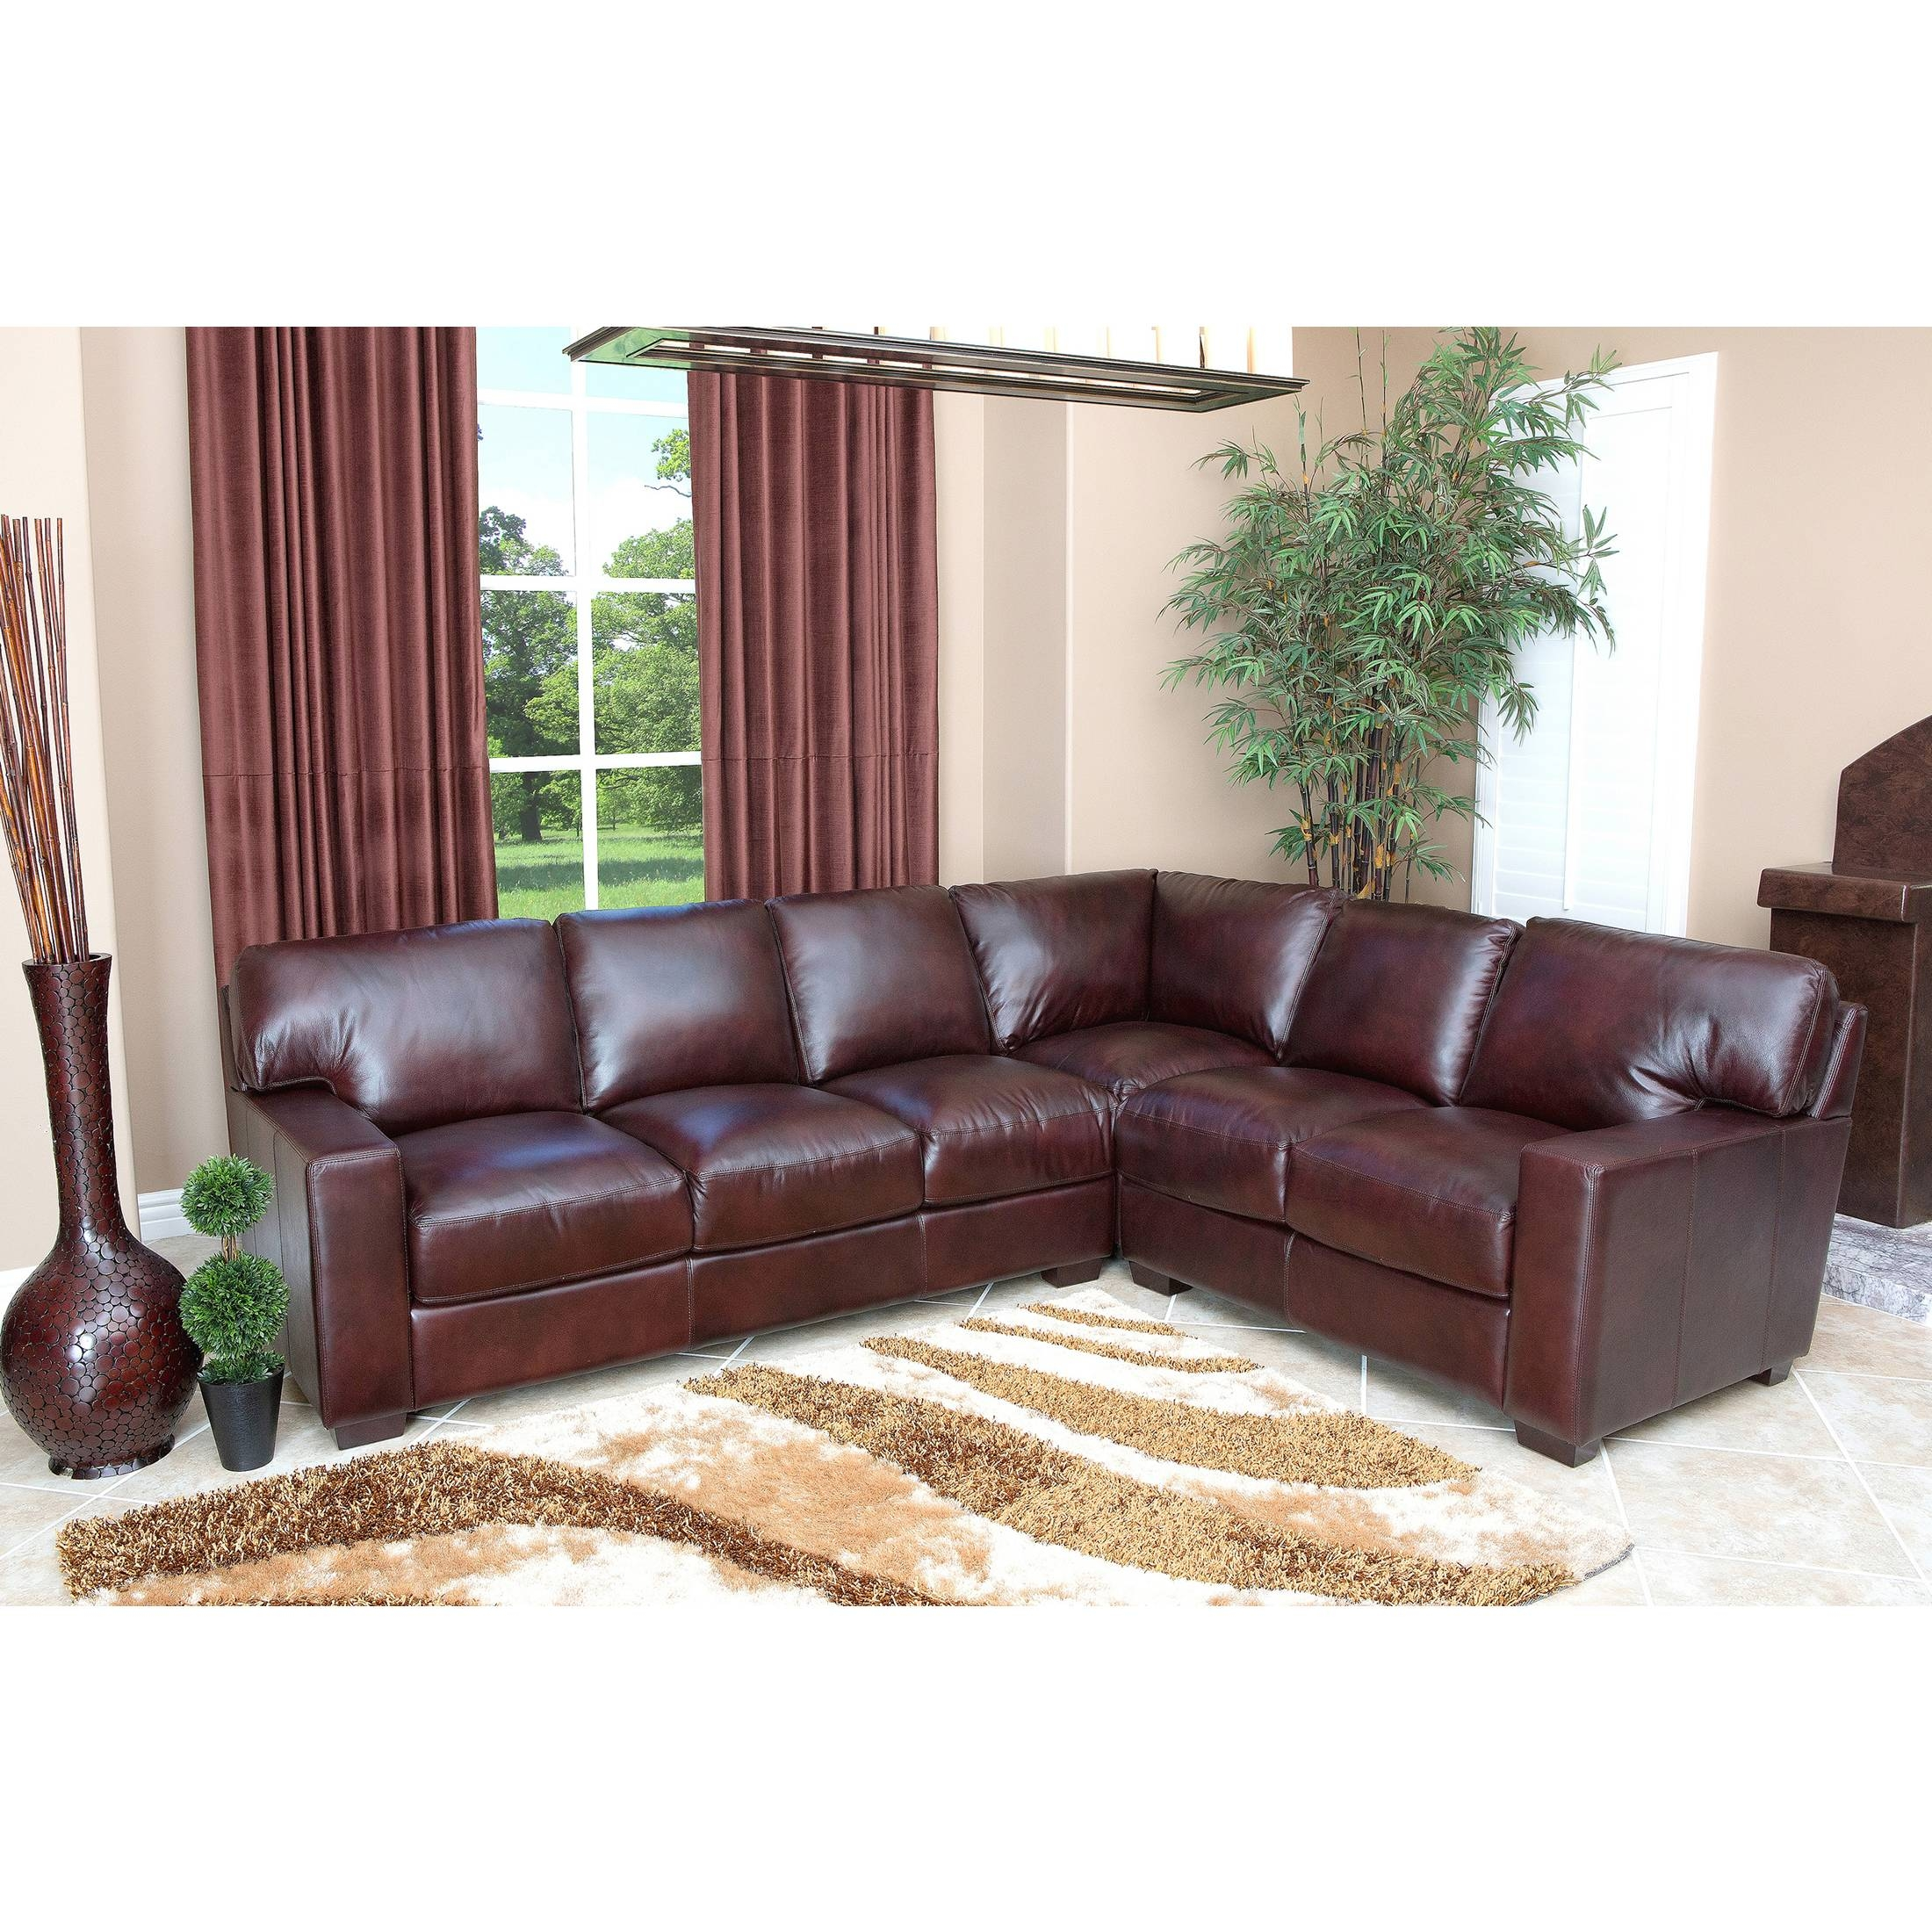 Abbyson Sectional Sofa 35 With Abbyson Sectional Sofa with Abbyson Sectional Sofa (Image 10 of 30)